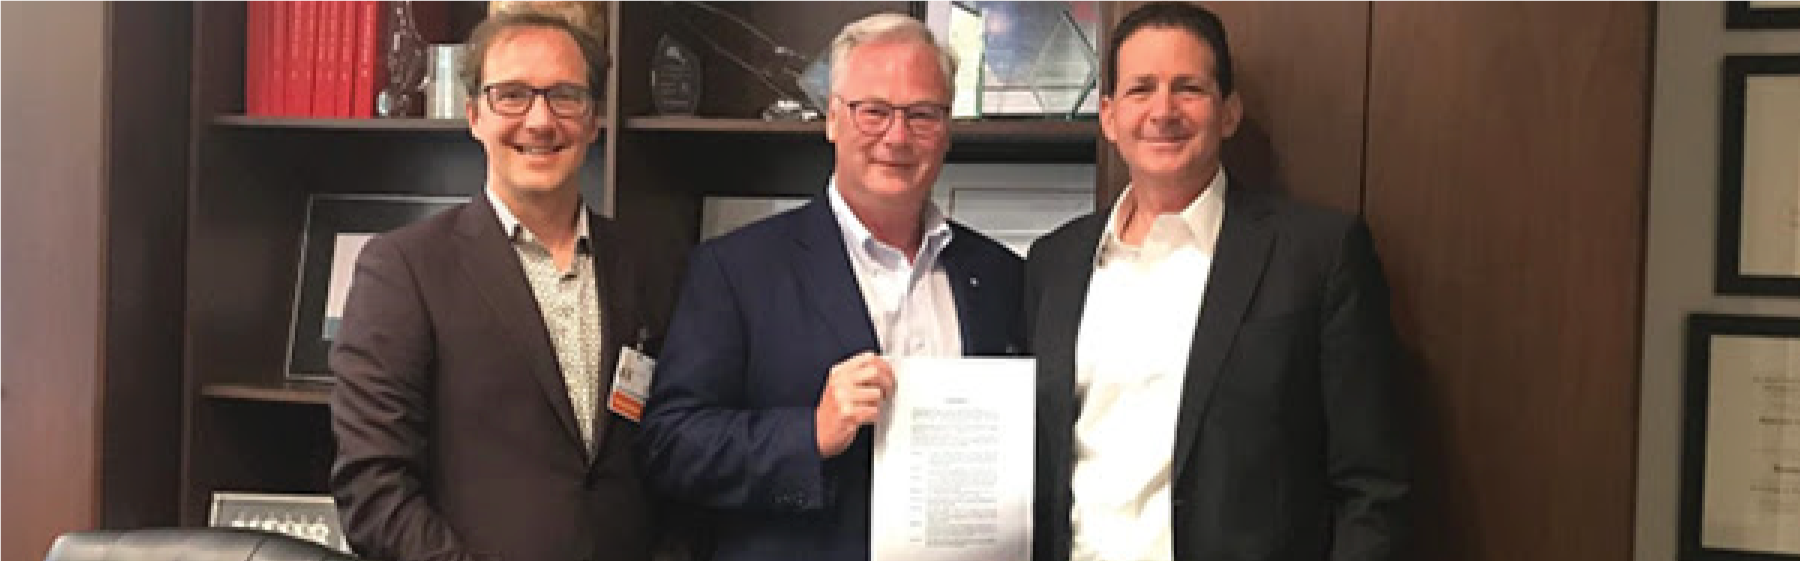 Dr. Jack Kitts (center), VP for Quality and Innovation, Dr. Alan Forster (left), and Sheba's Chief Medical Officer and Chief Innovation Officer, Dr. Eyal Zimlichman (right).